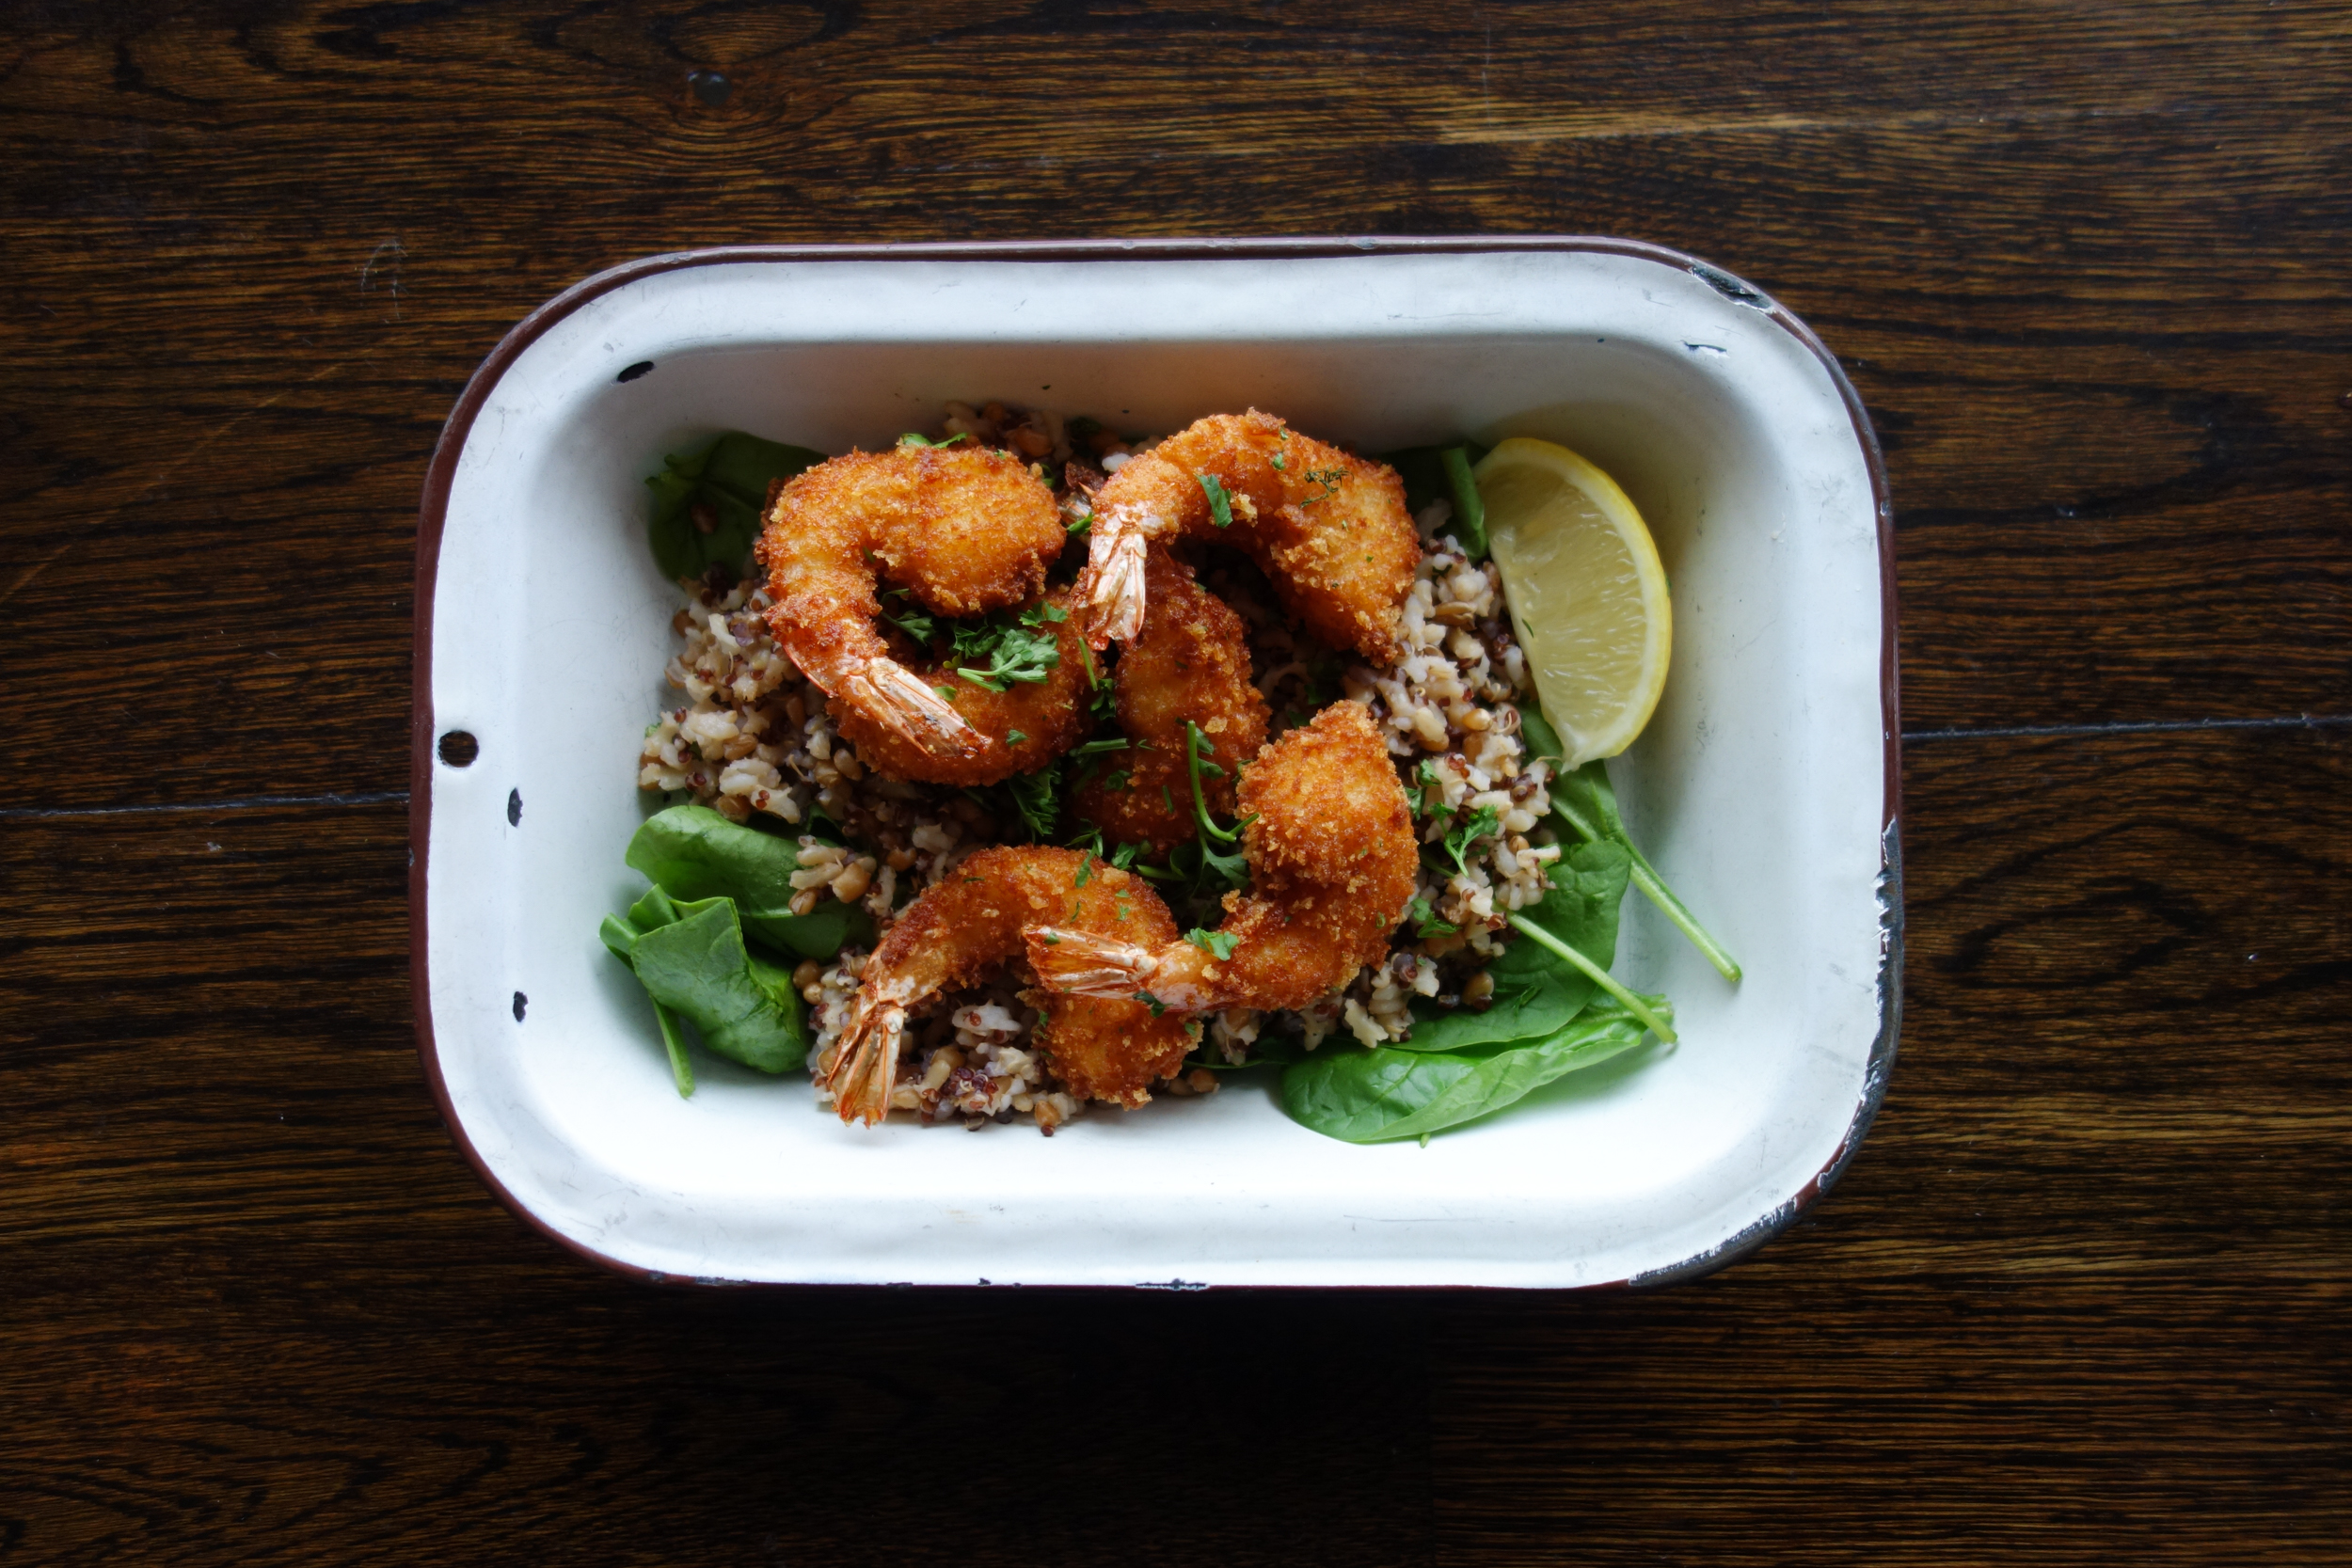 Shrimp - Crispy Powerbox